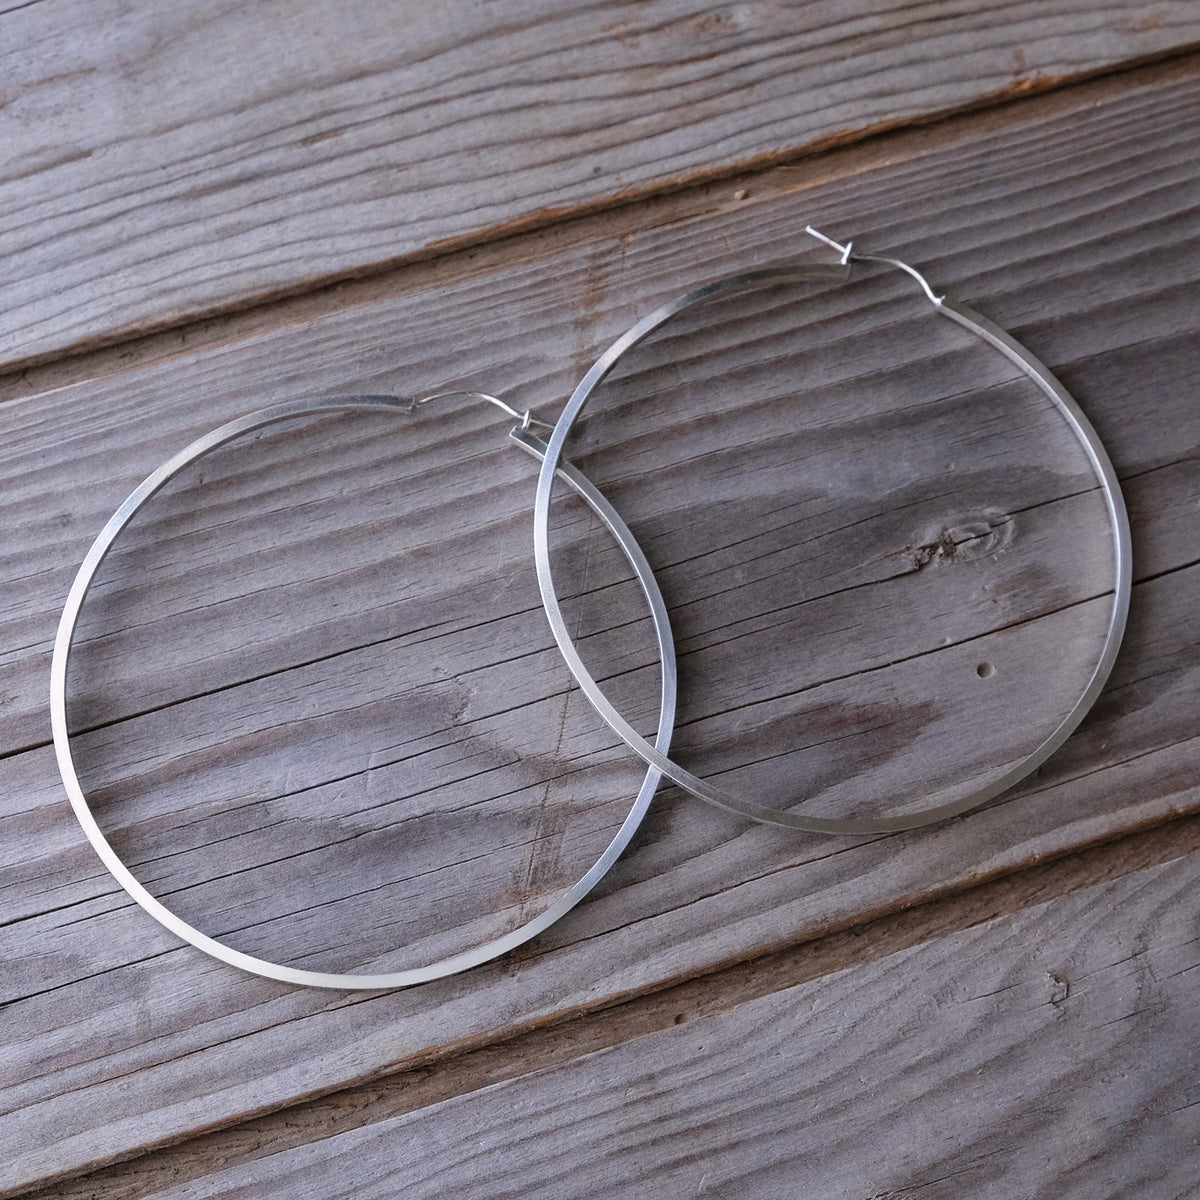 Geometric Sterling Silver Statement Hoop Earrings - Glass Sky Jewelry - Handmade in Columbus Ohio by artist Andrea Kaiser